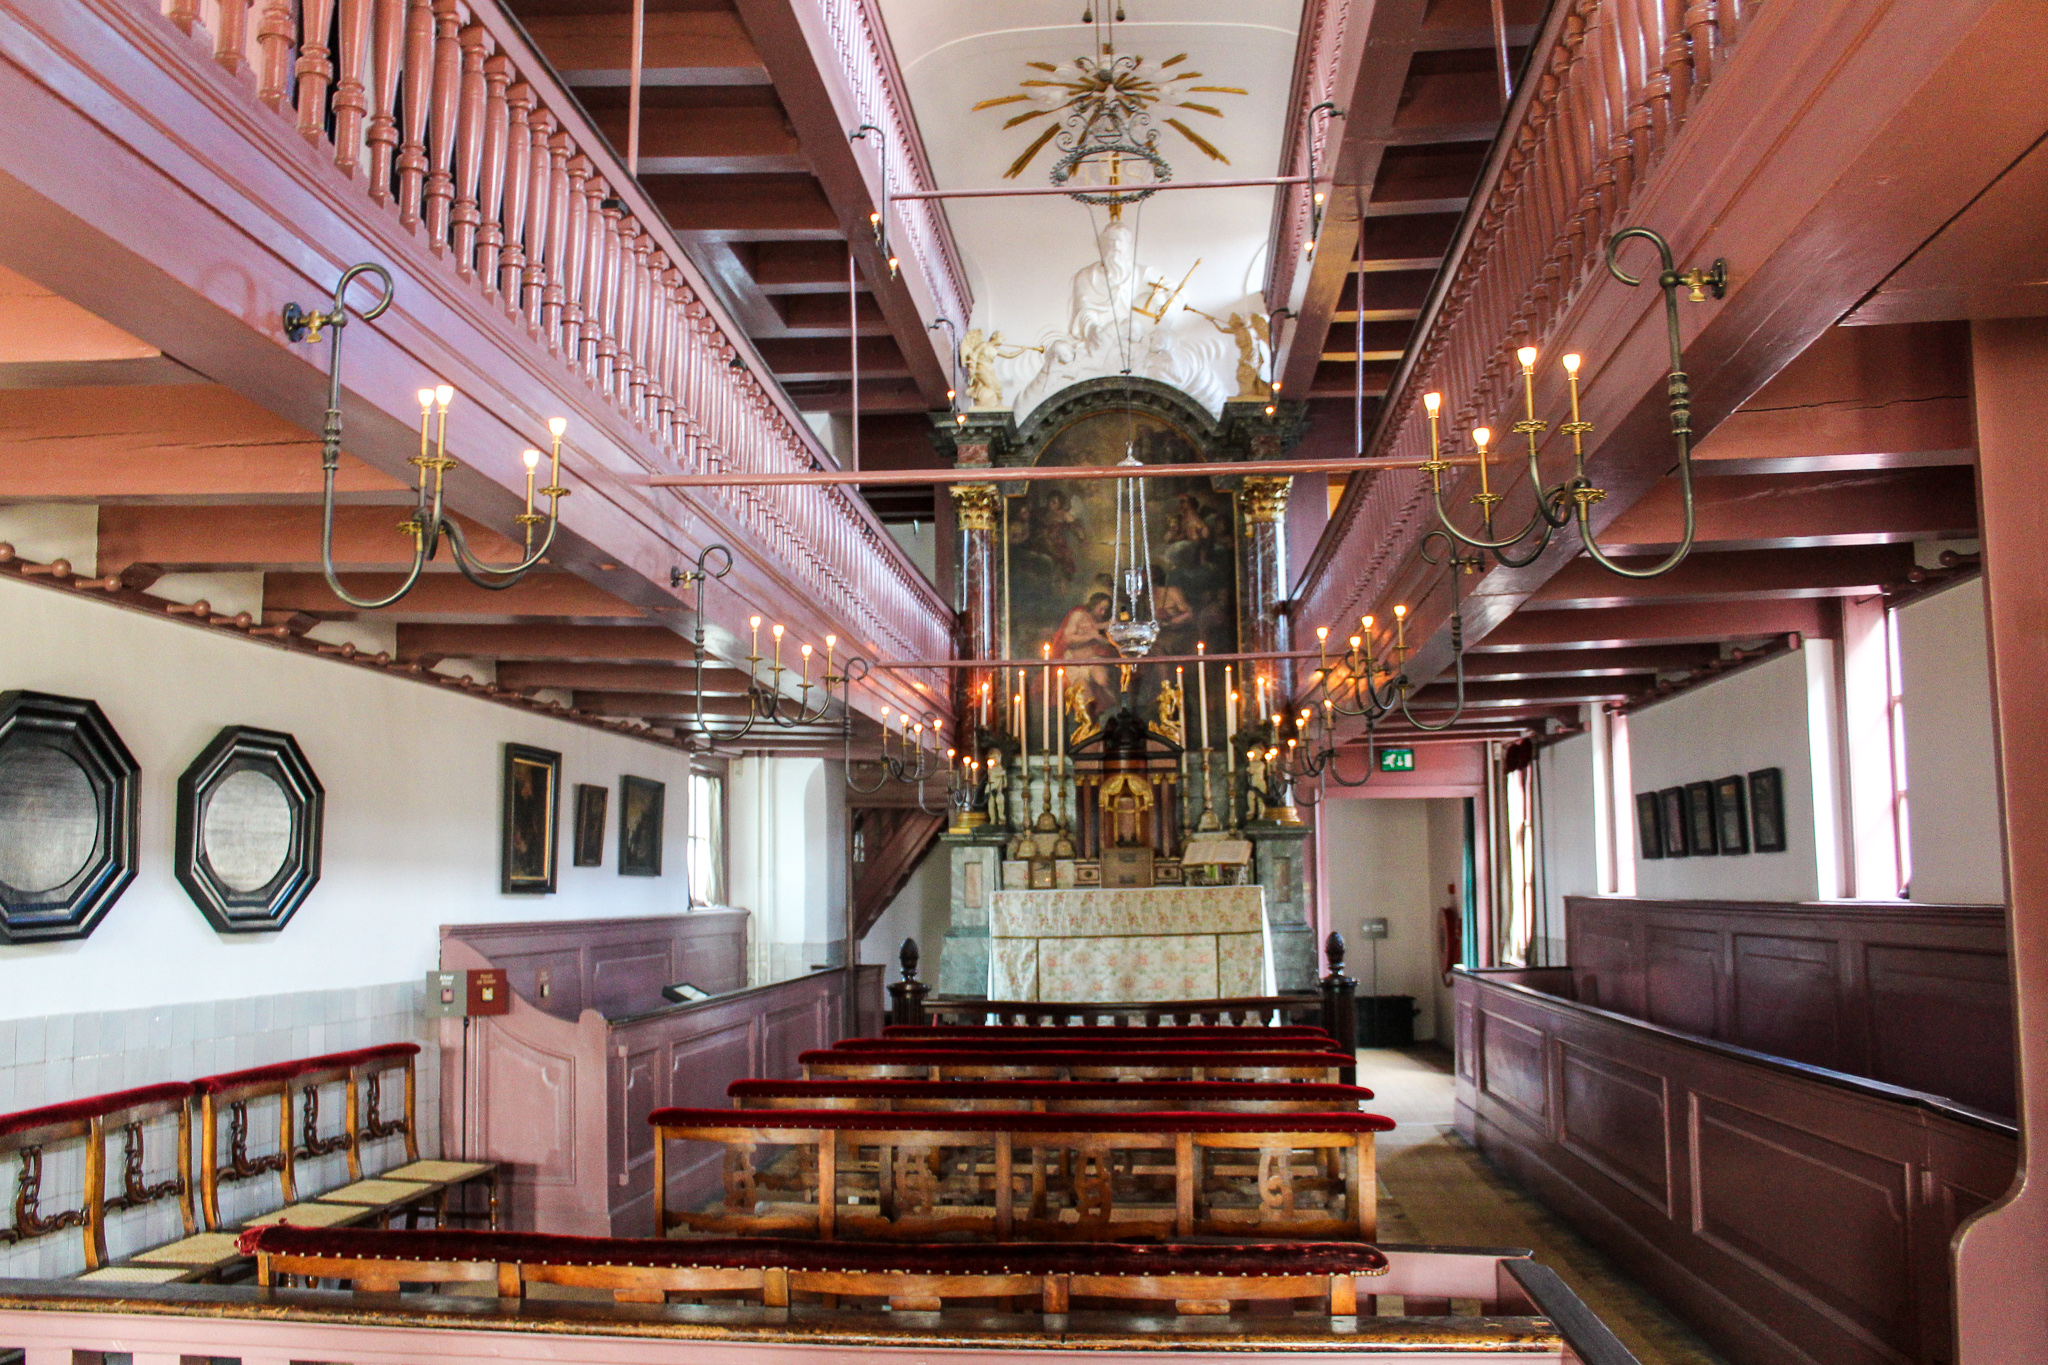 seeing the church in the attic is a good idea with 48 hours in amsterdam